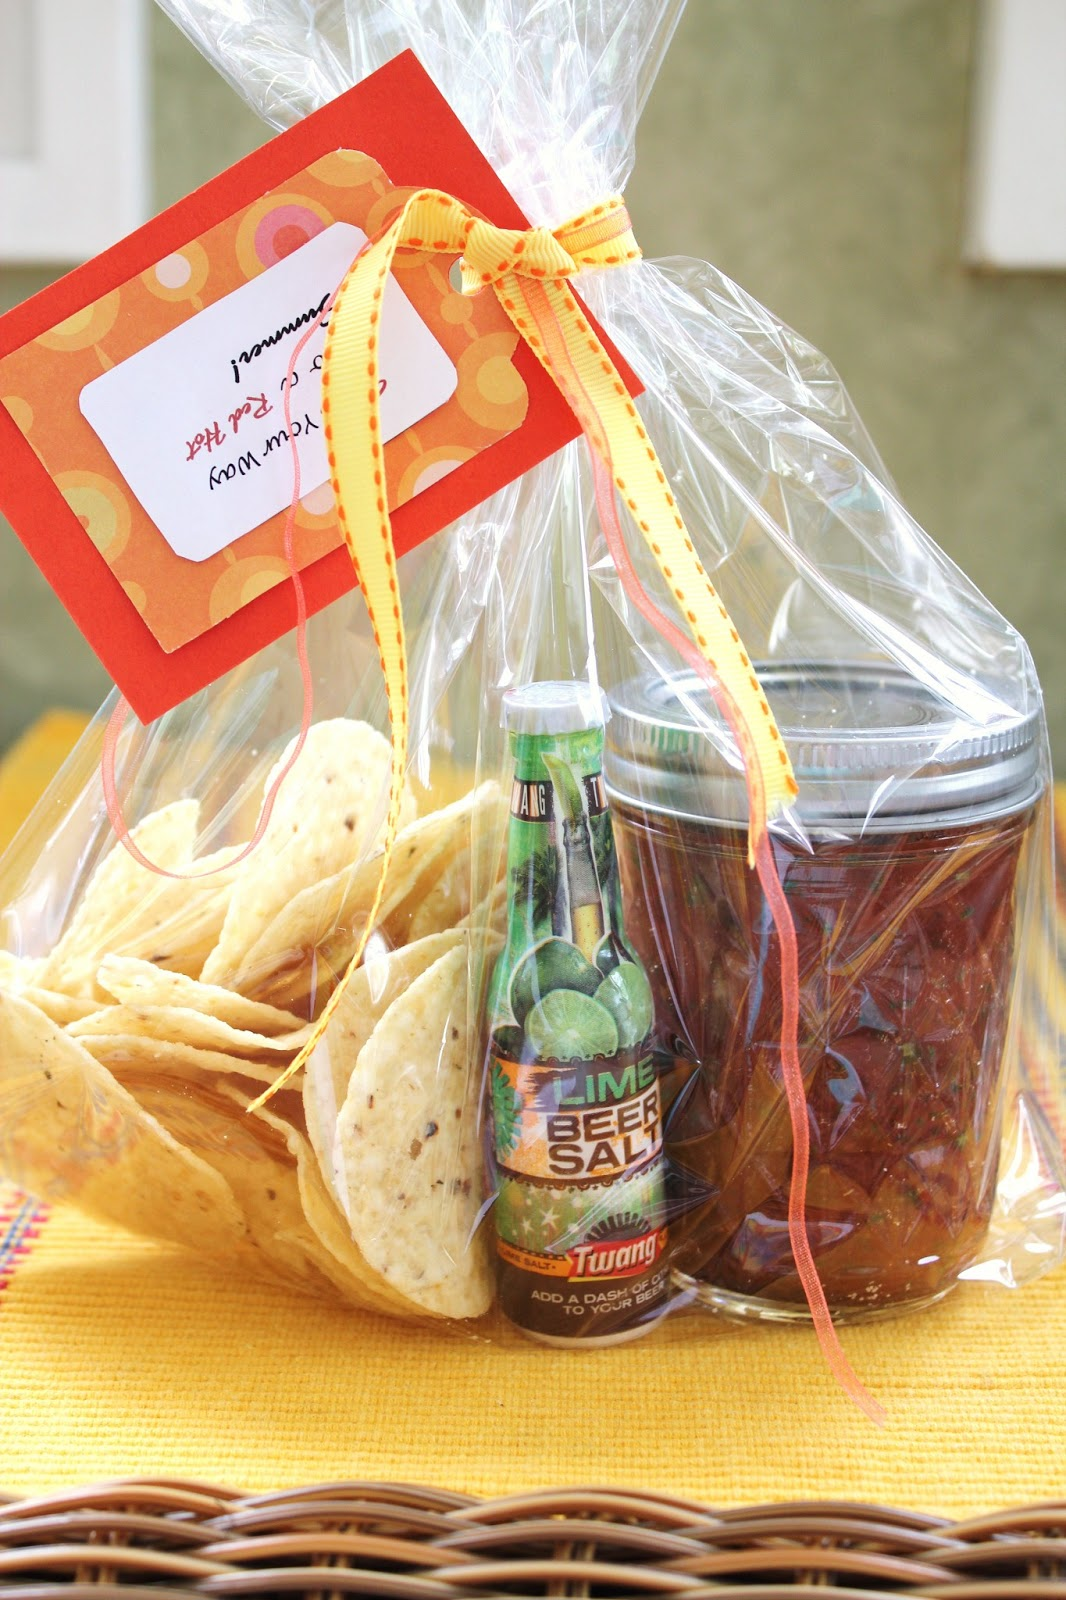 Salsa Lime Beer Salt Some Chips. & The Niewald Kitchen Table : End of the Year Teacher Gifts